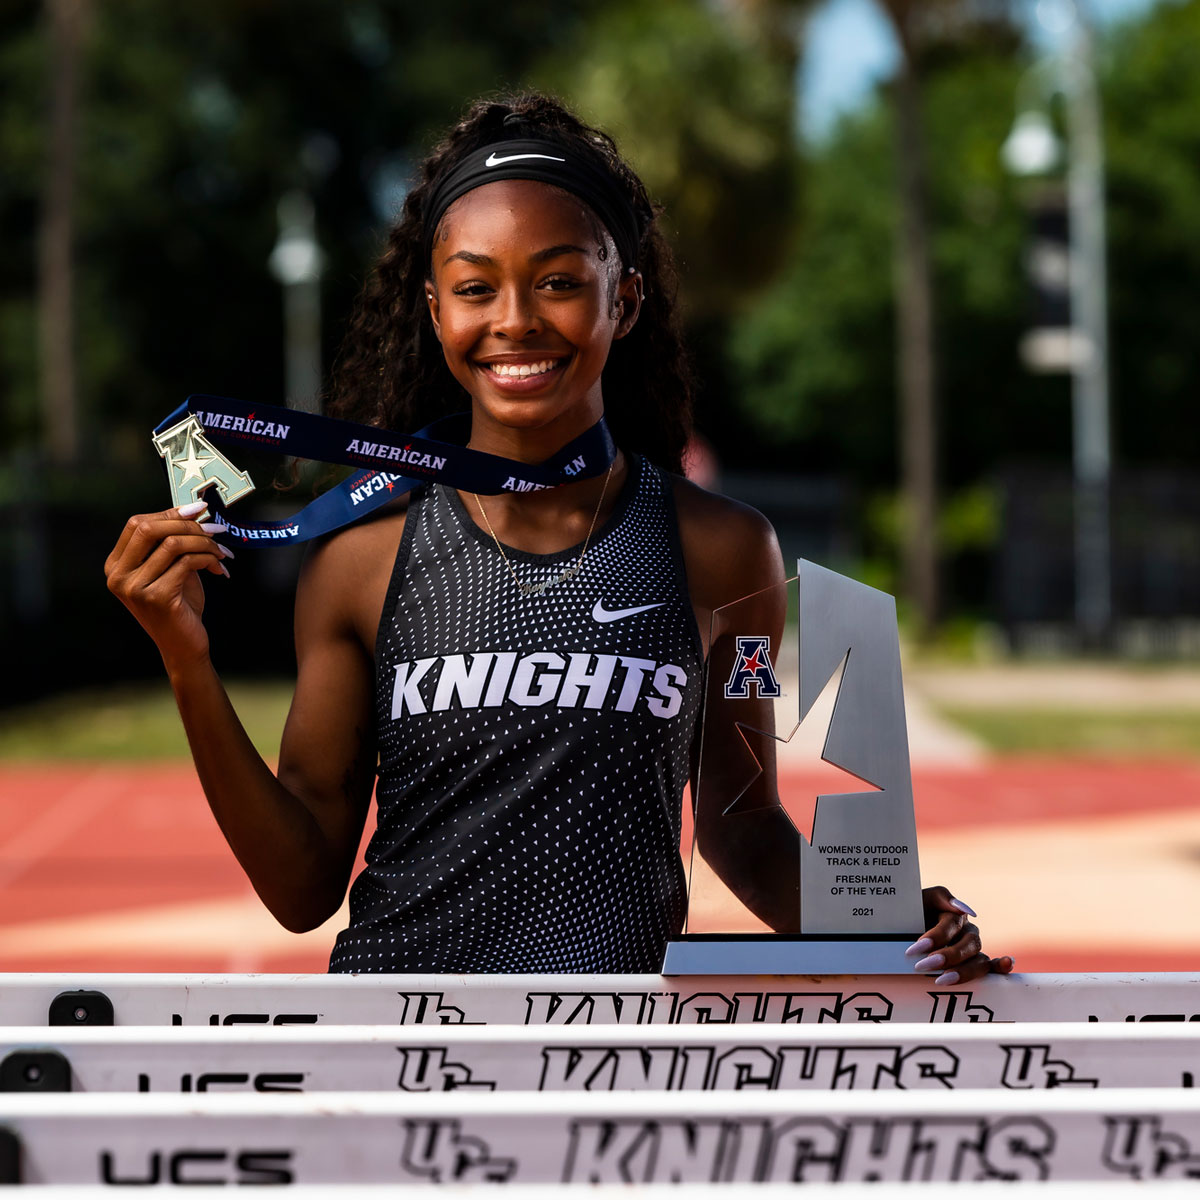 Rayniah Jones stands near hurdles, holding AAC medal and trophy